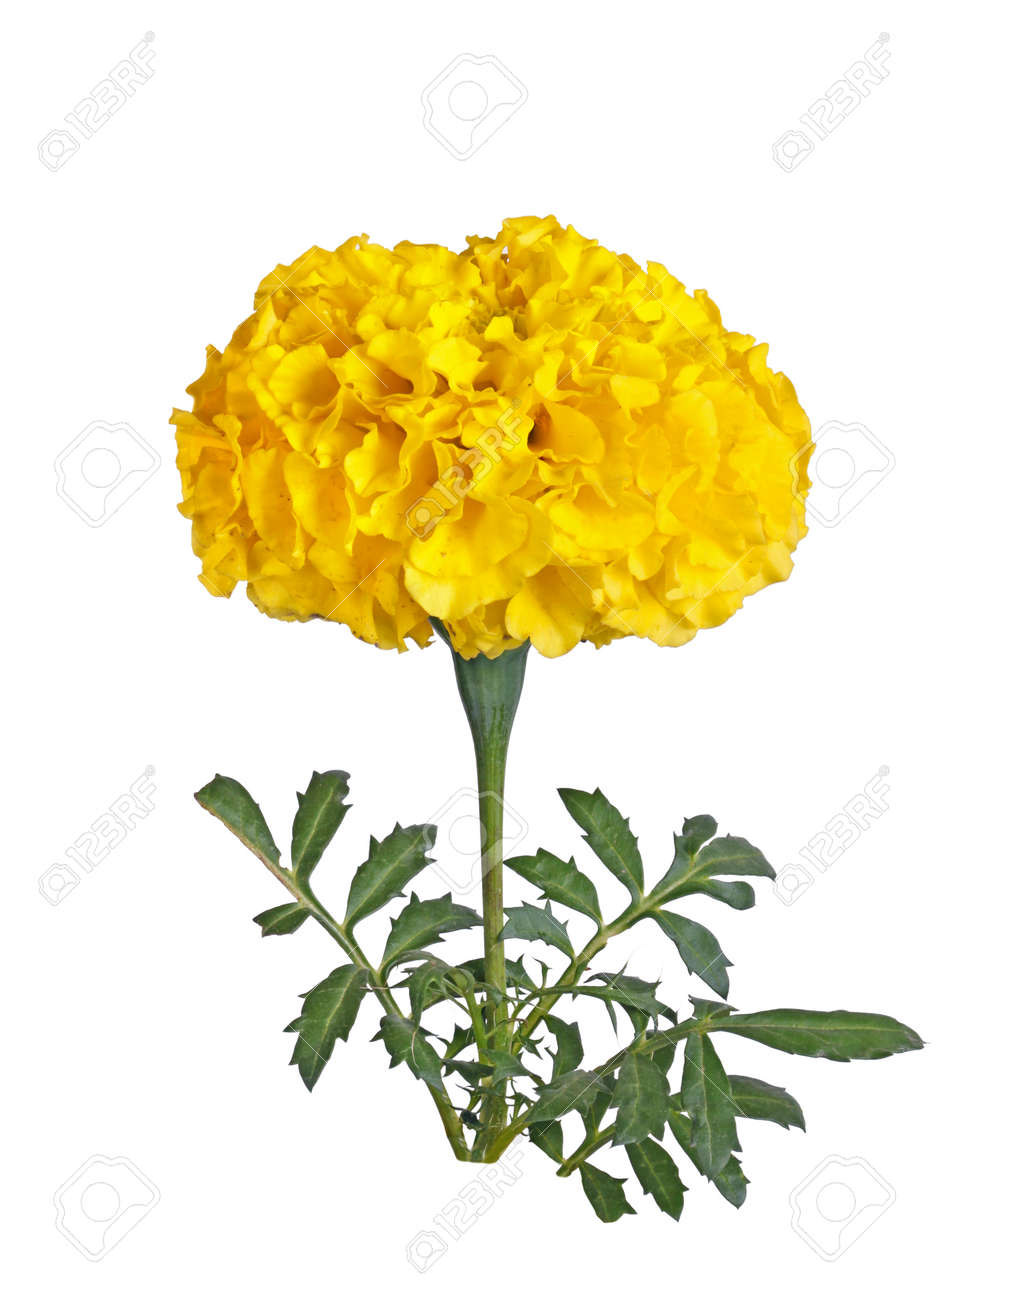 Single Stem With A Full Yellow Flower Of A Marigold Tagetes Stock